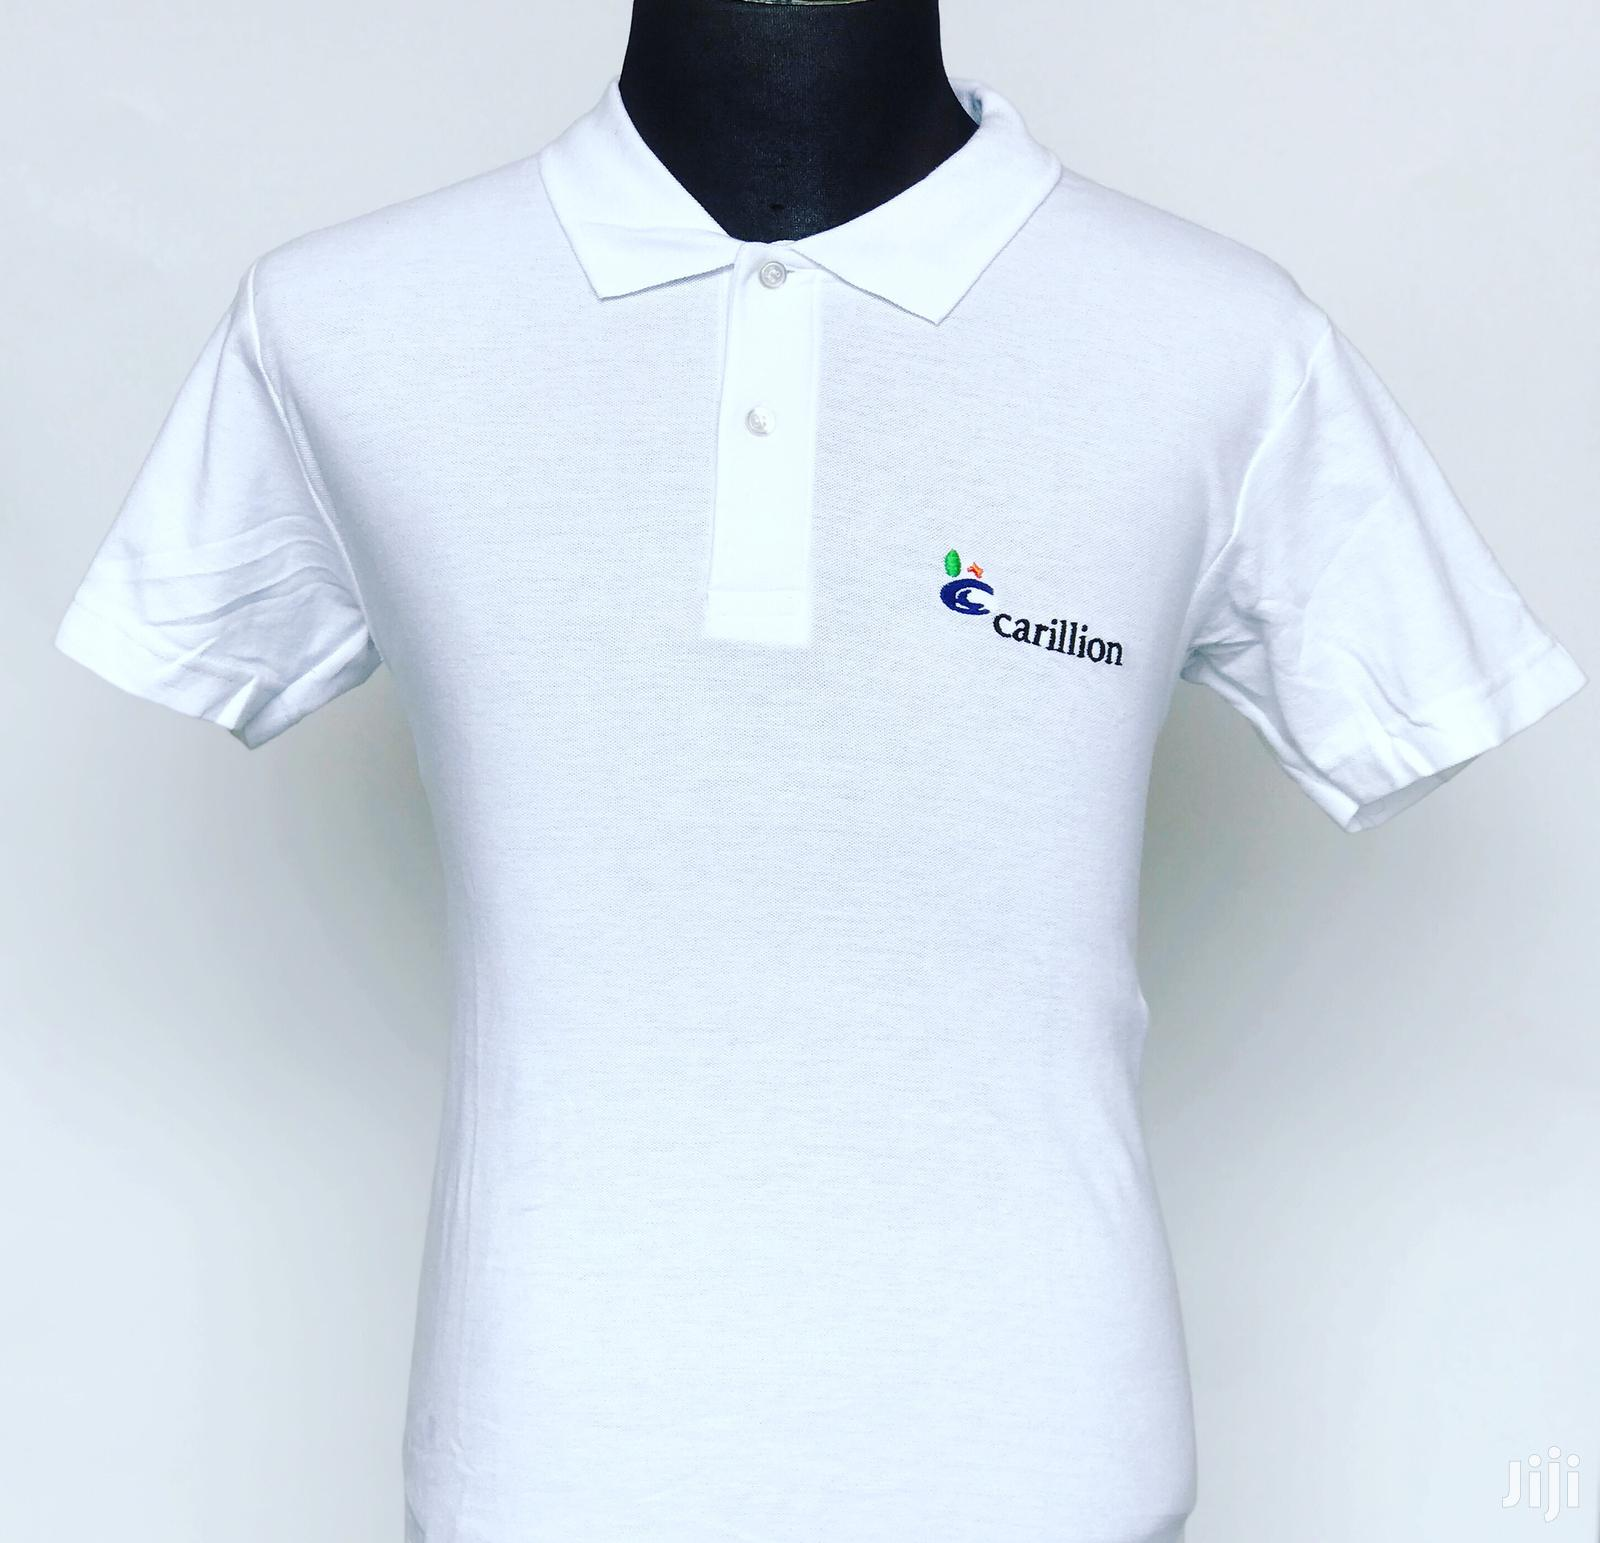 Archive: Wholesale Polo T-Shirts From UK 🇬🇧